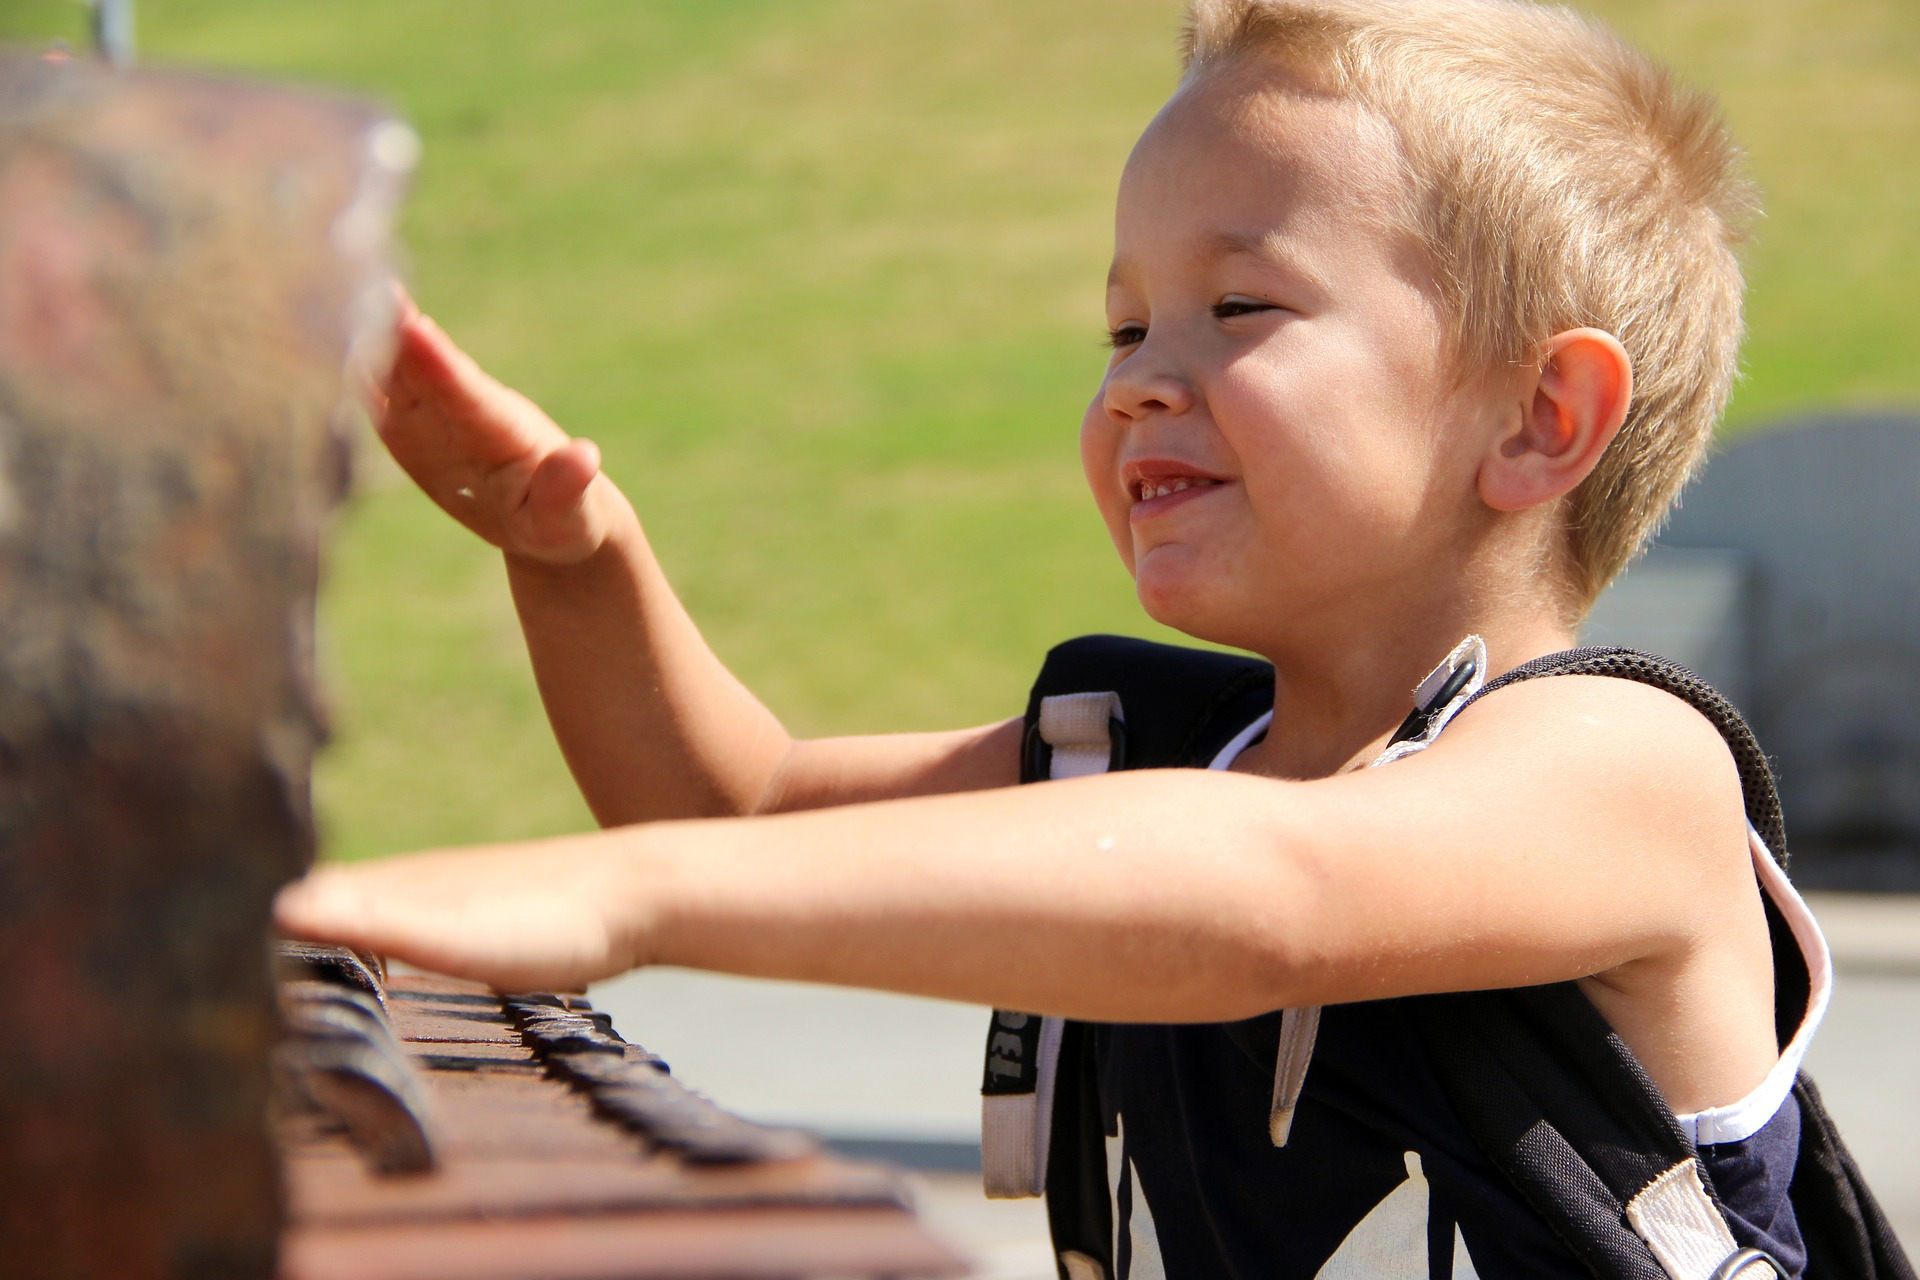 Little happy boy playing piano outside